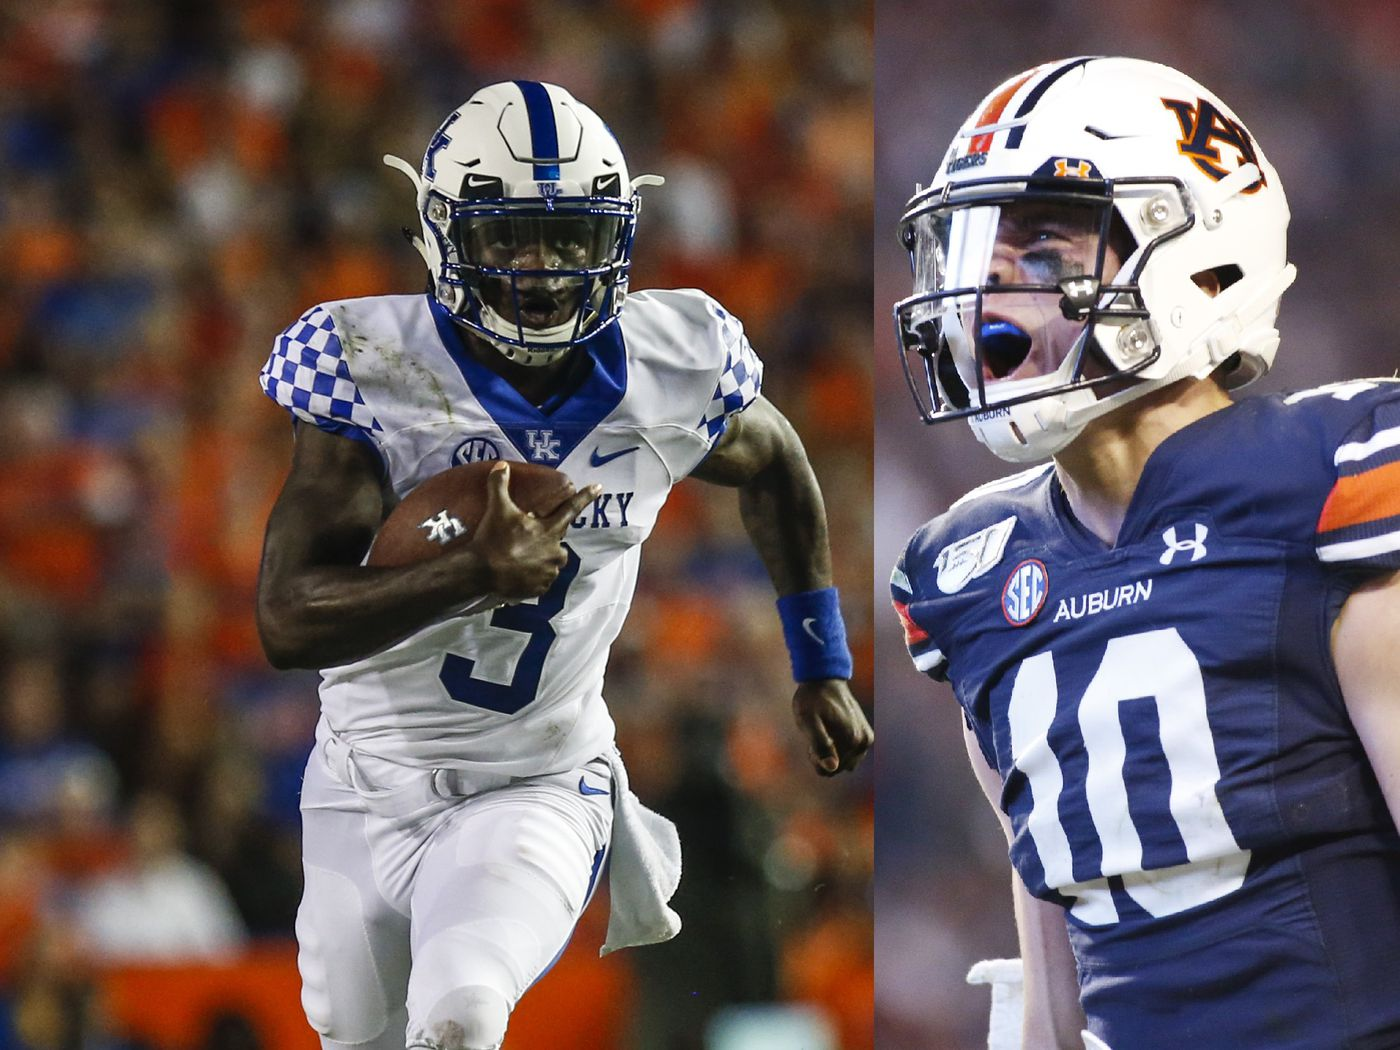 Kentucky Wildcats Vs Auburn Tigers Game Time TV Channel Online Stream Odds And More A Sea Of Blue